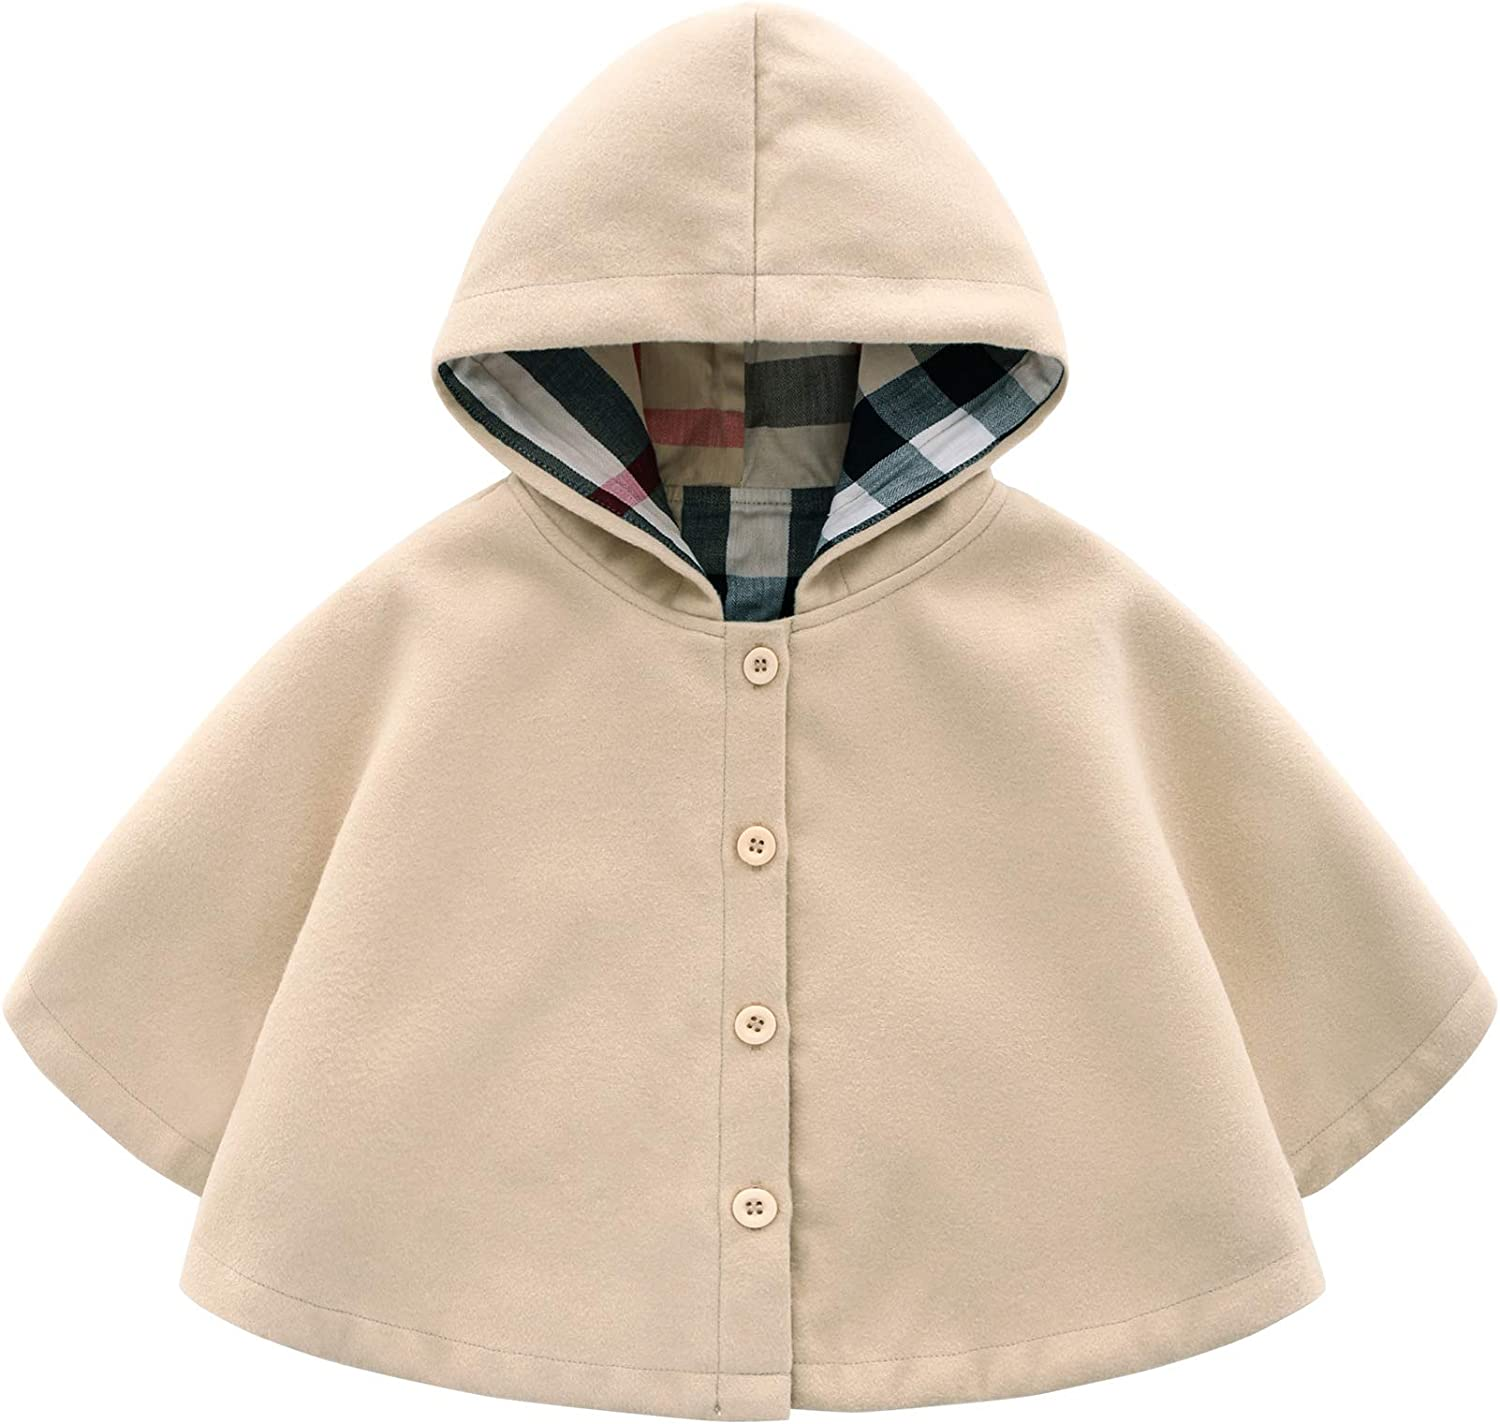 Hotmiss Baby Girls Boys Toddler Wool Blend Hooded Outerwear Capes Poncho Coat